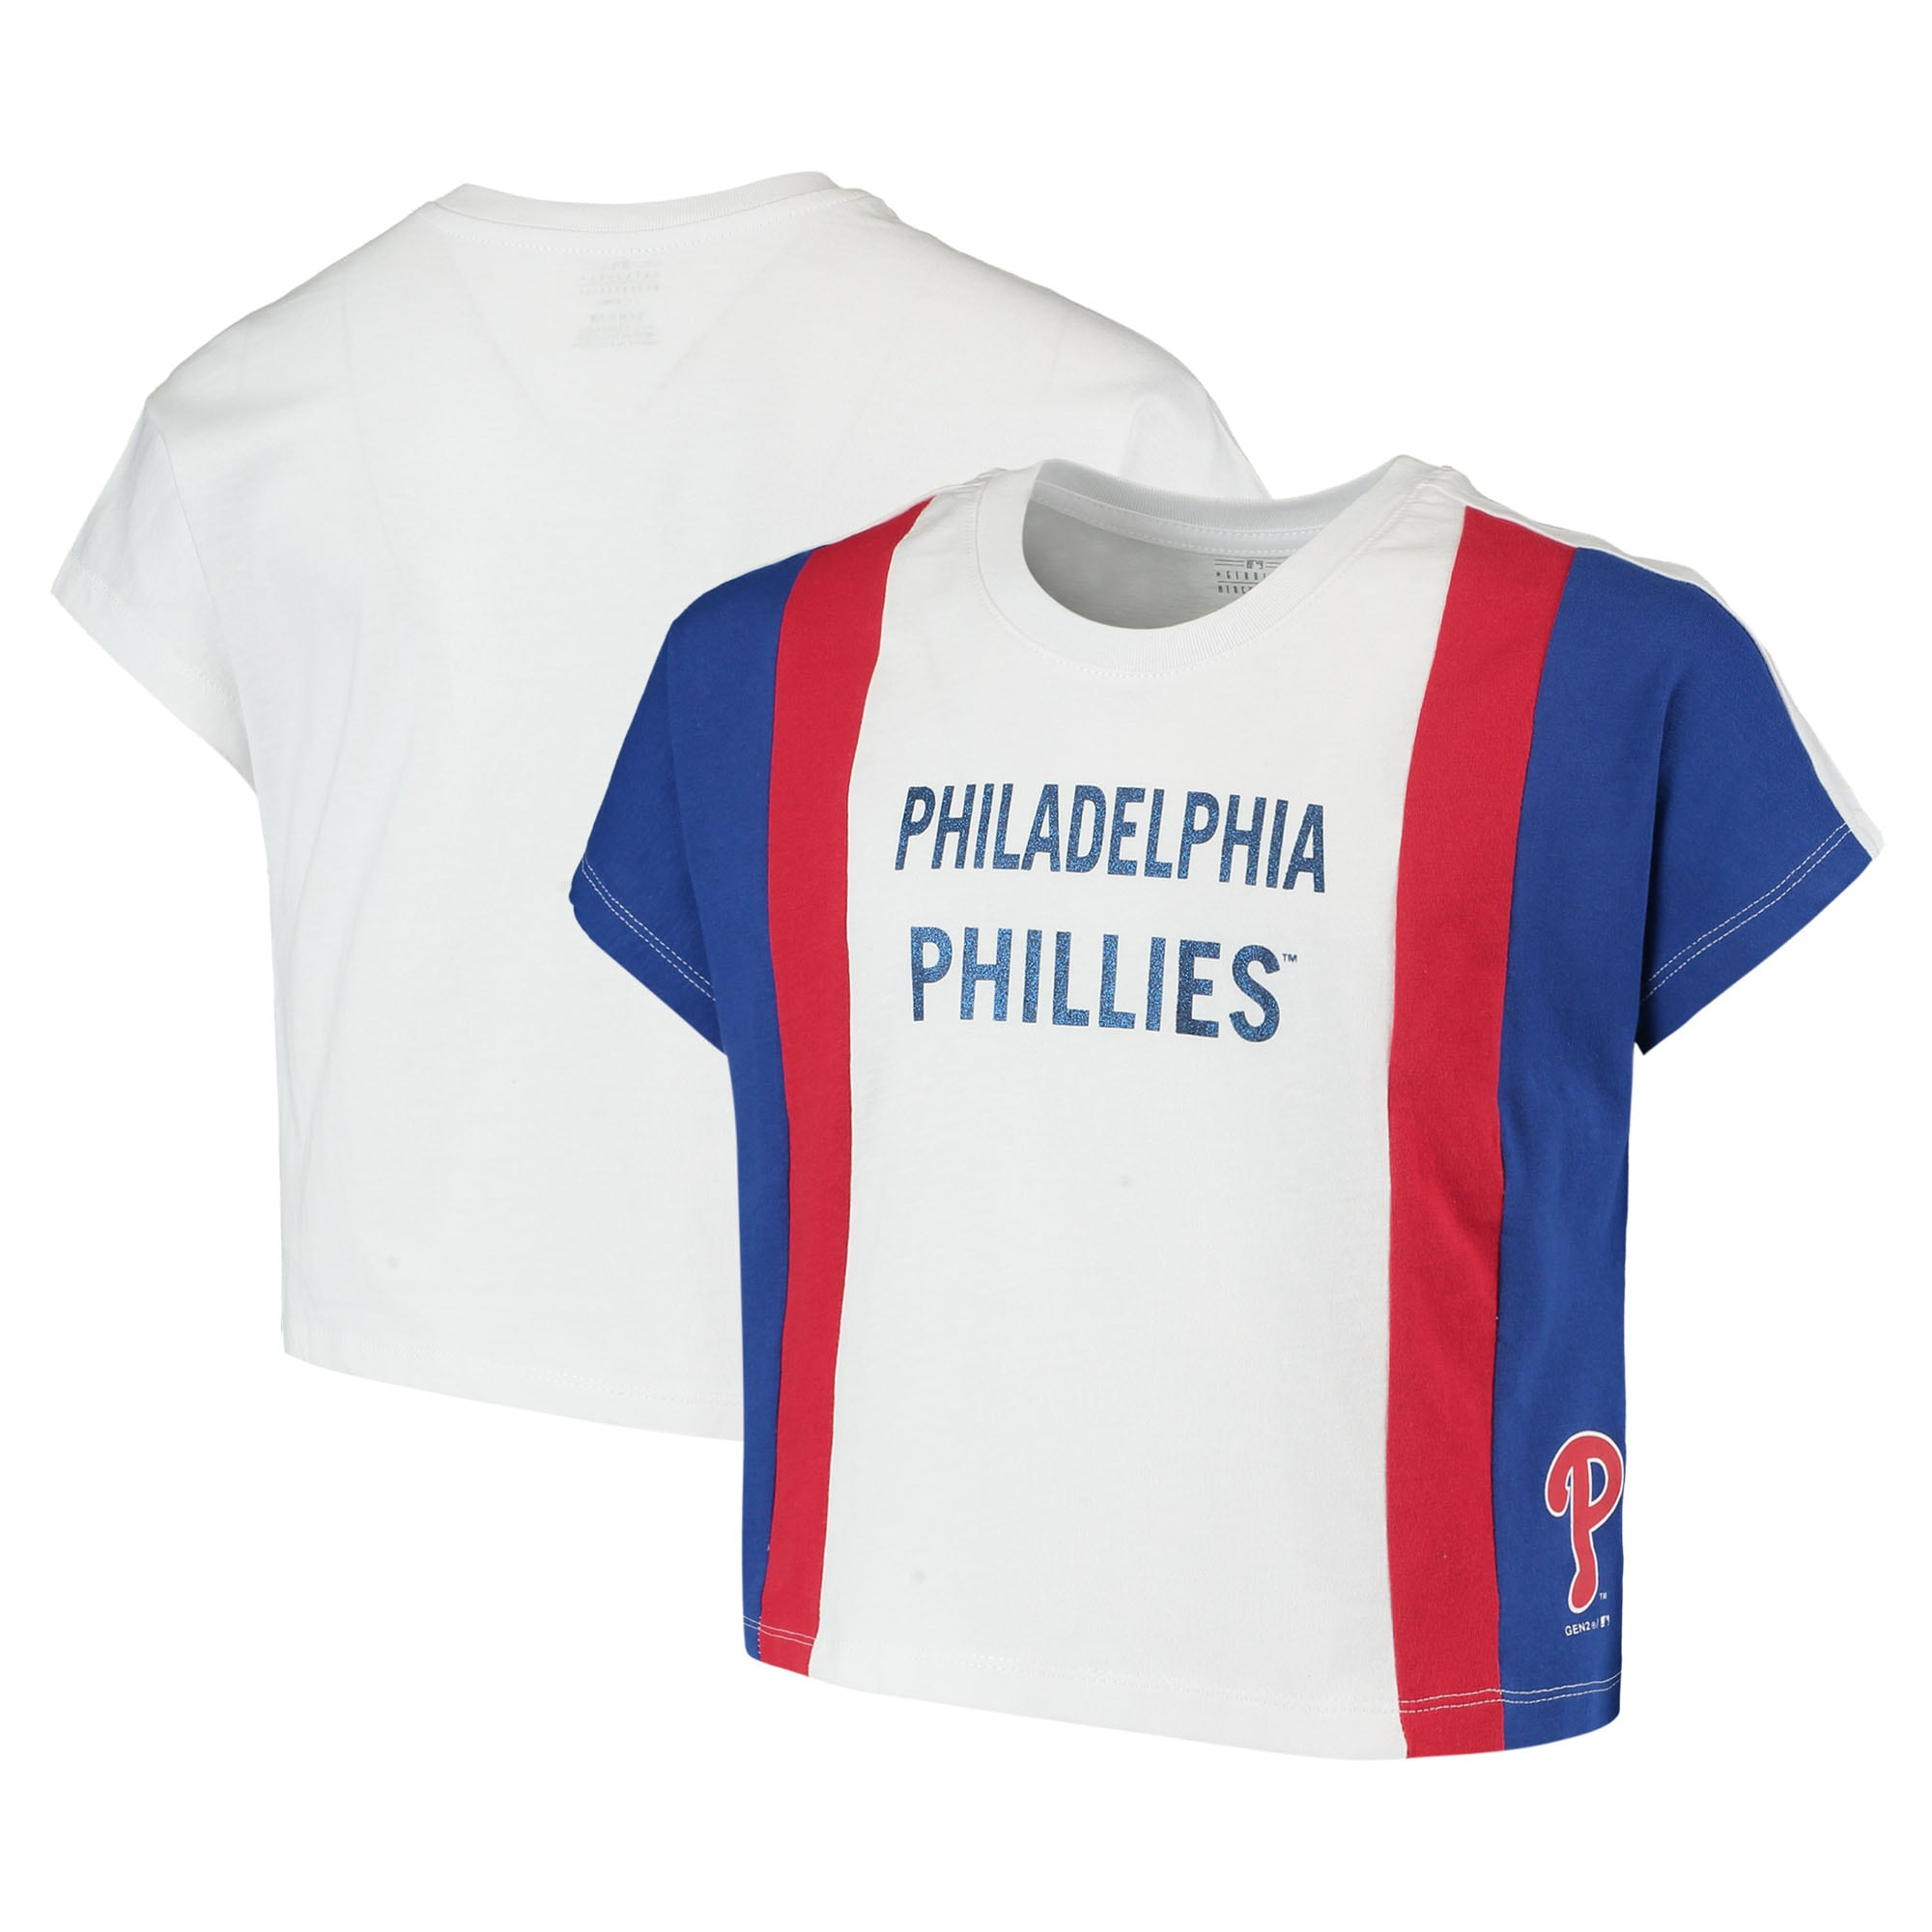 Philadelphia Phillies Girls Youth As If Cropped Boxy T-Shirt - White/Royal